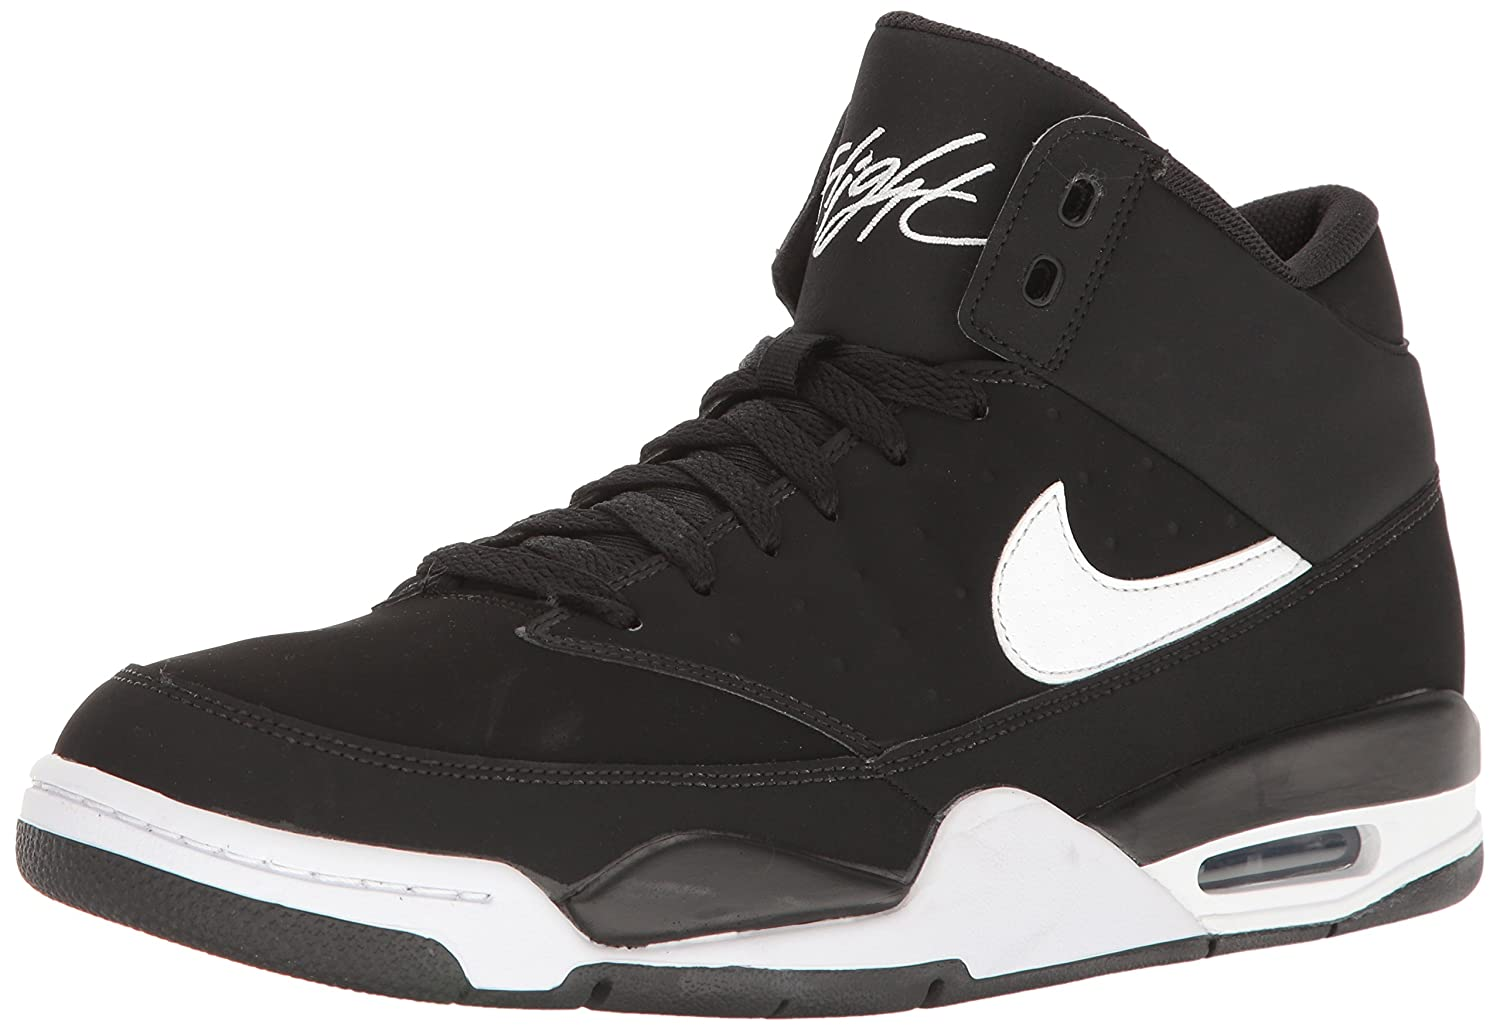 best website d7e04 390fb Amazon.com   Nike Men s Air Flight Classic Basketball Shoe   Fashion  Sneakers